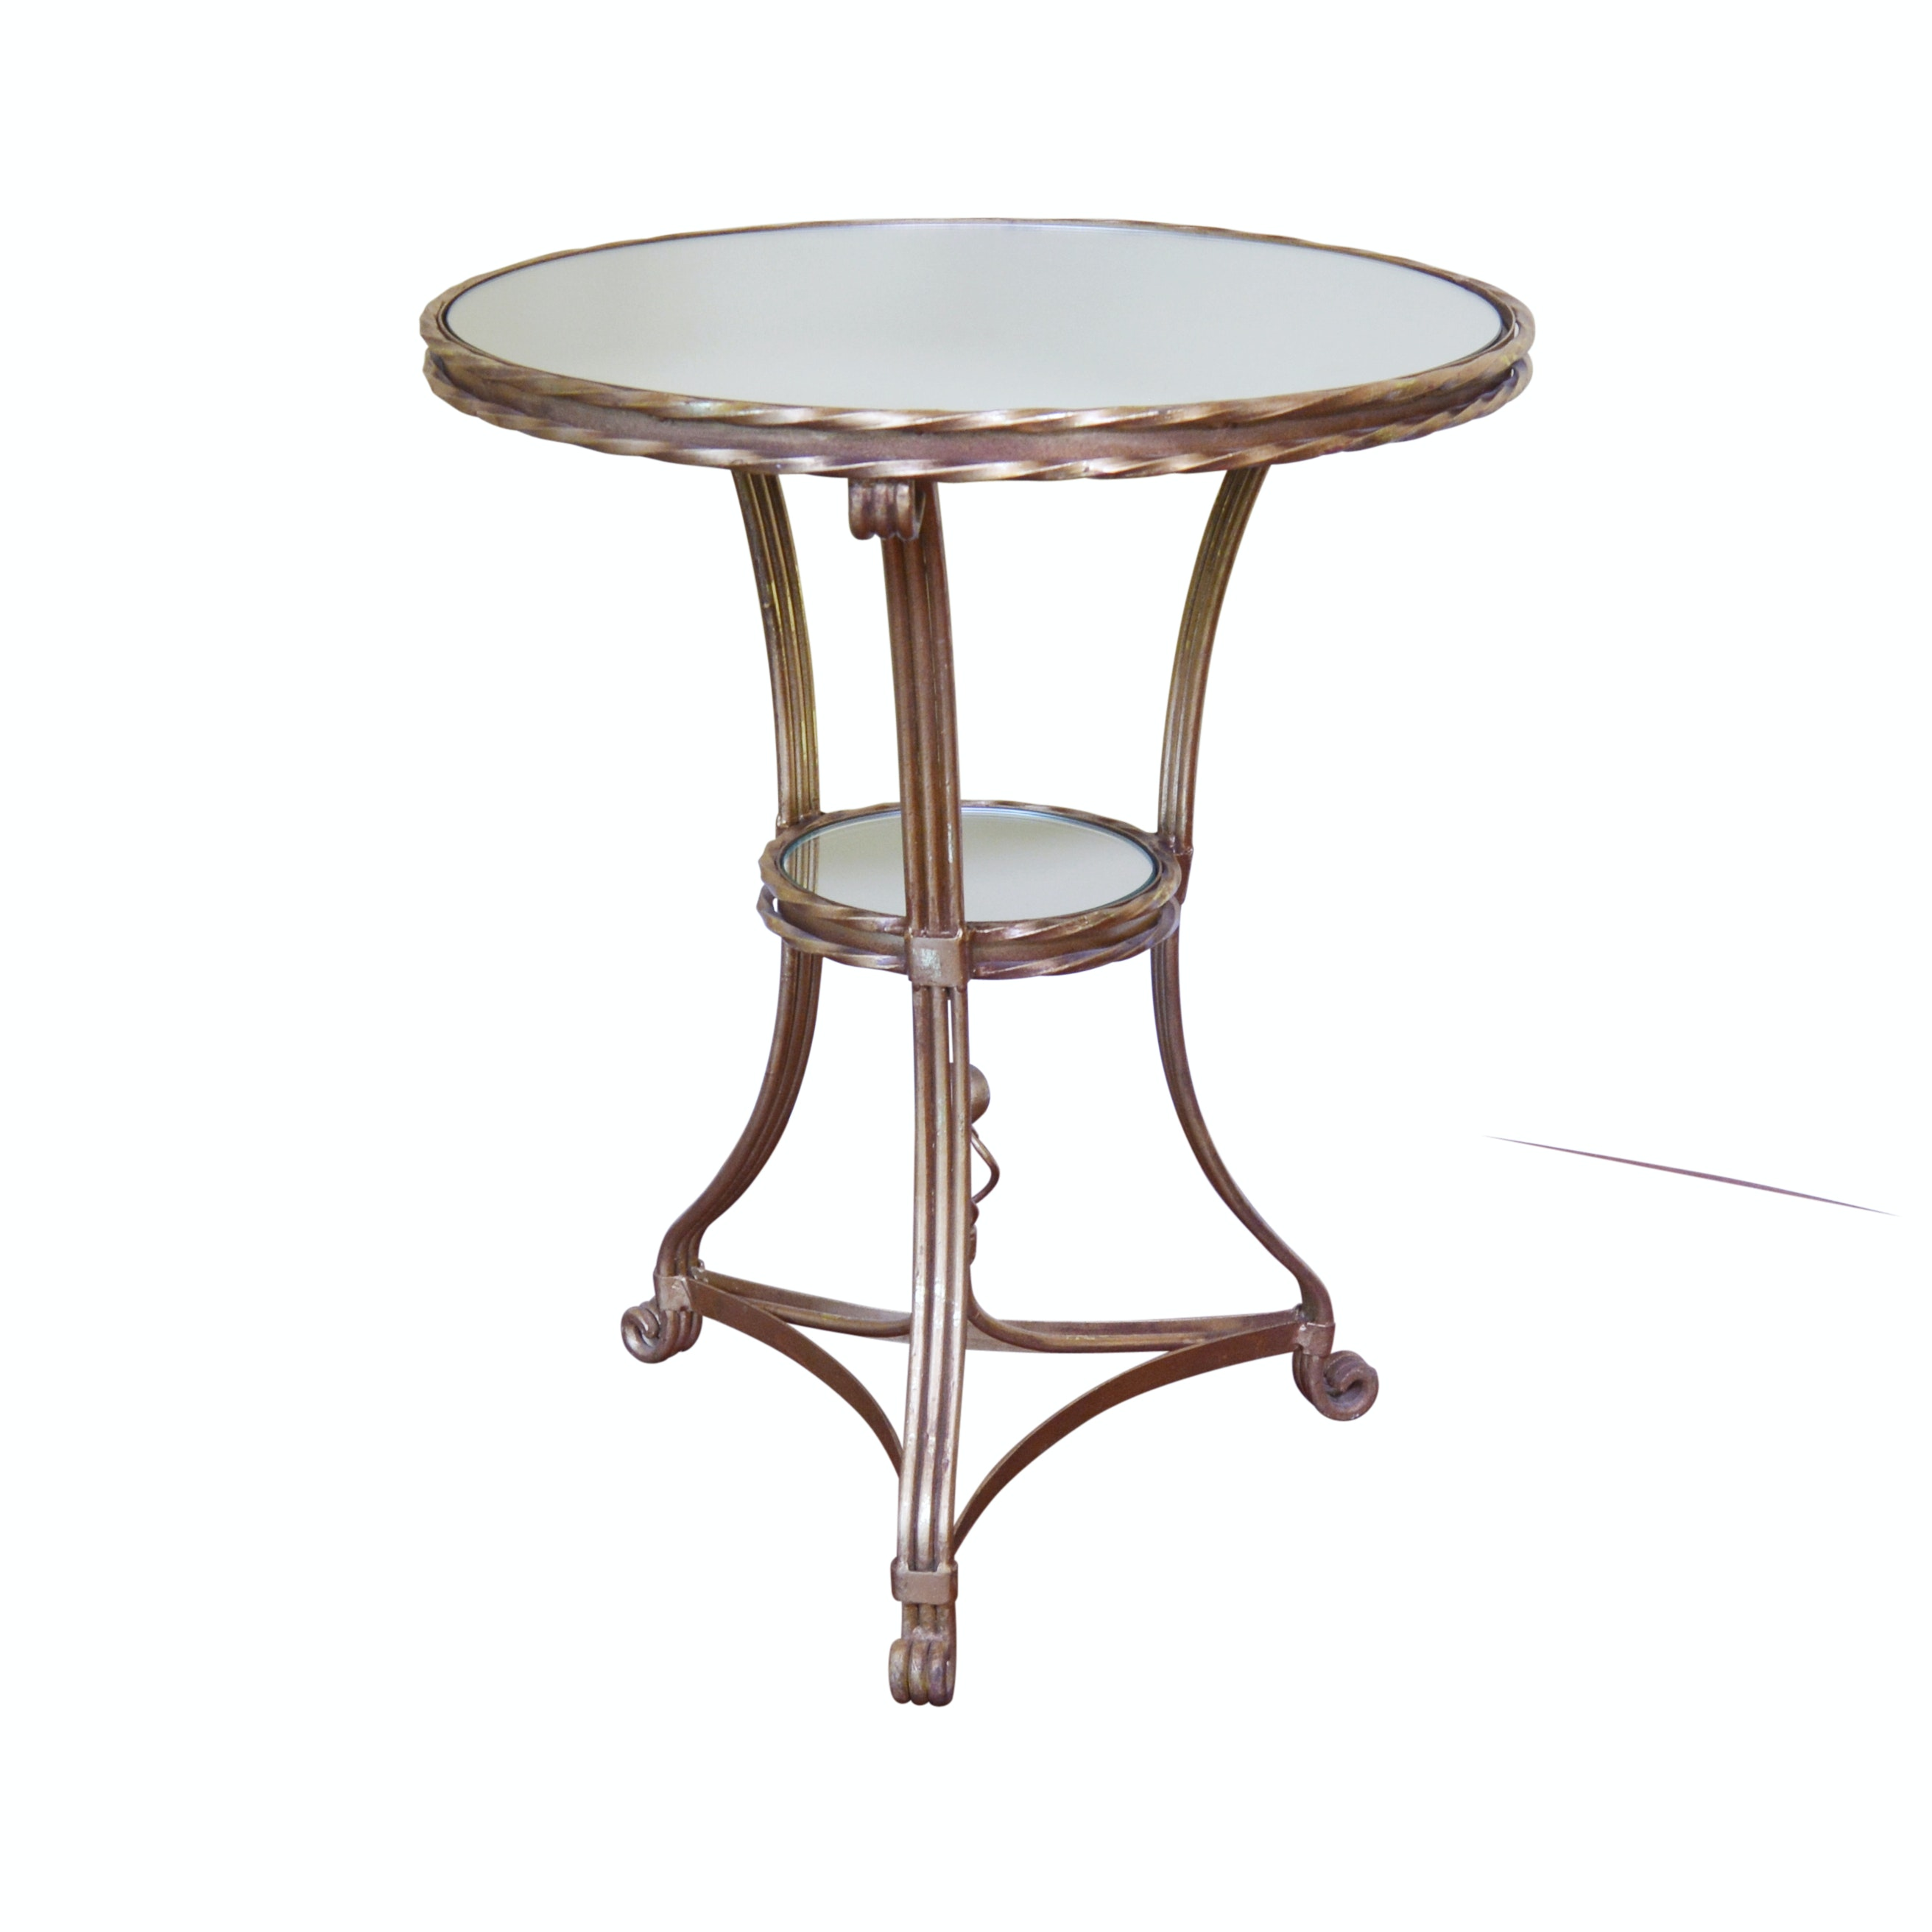 Mirrored Round Bronze Tone Metal Accent Table